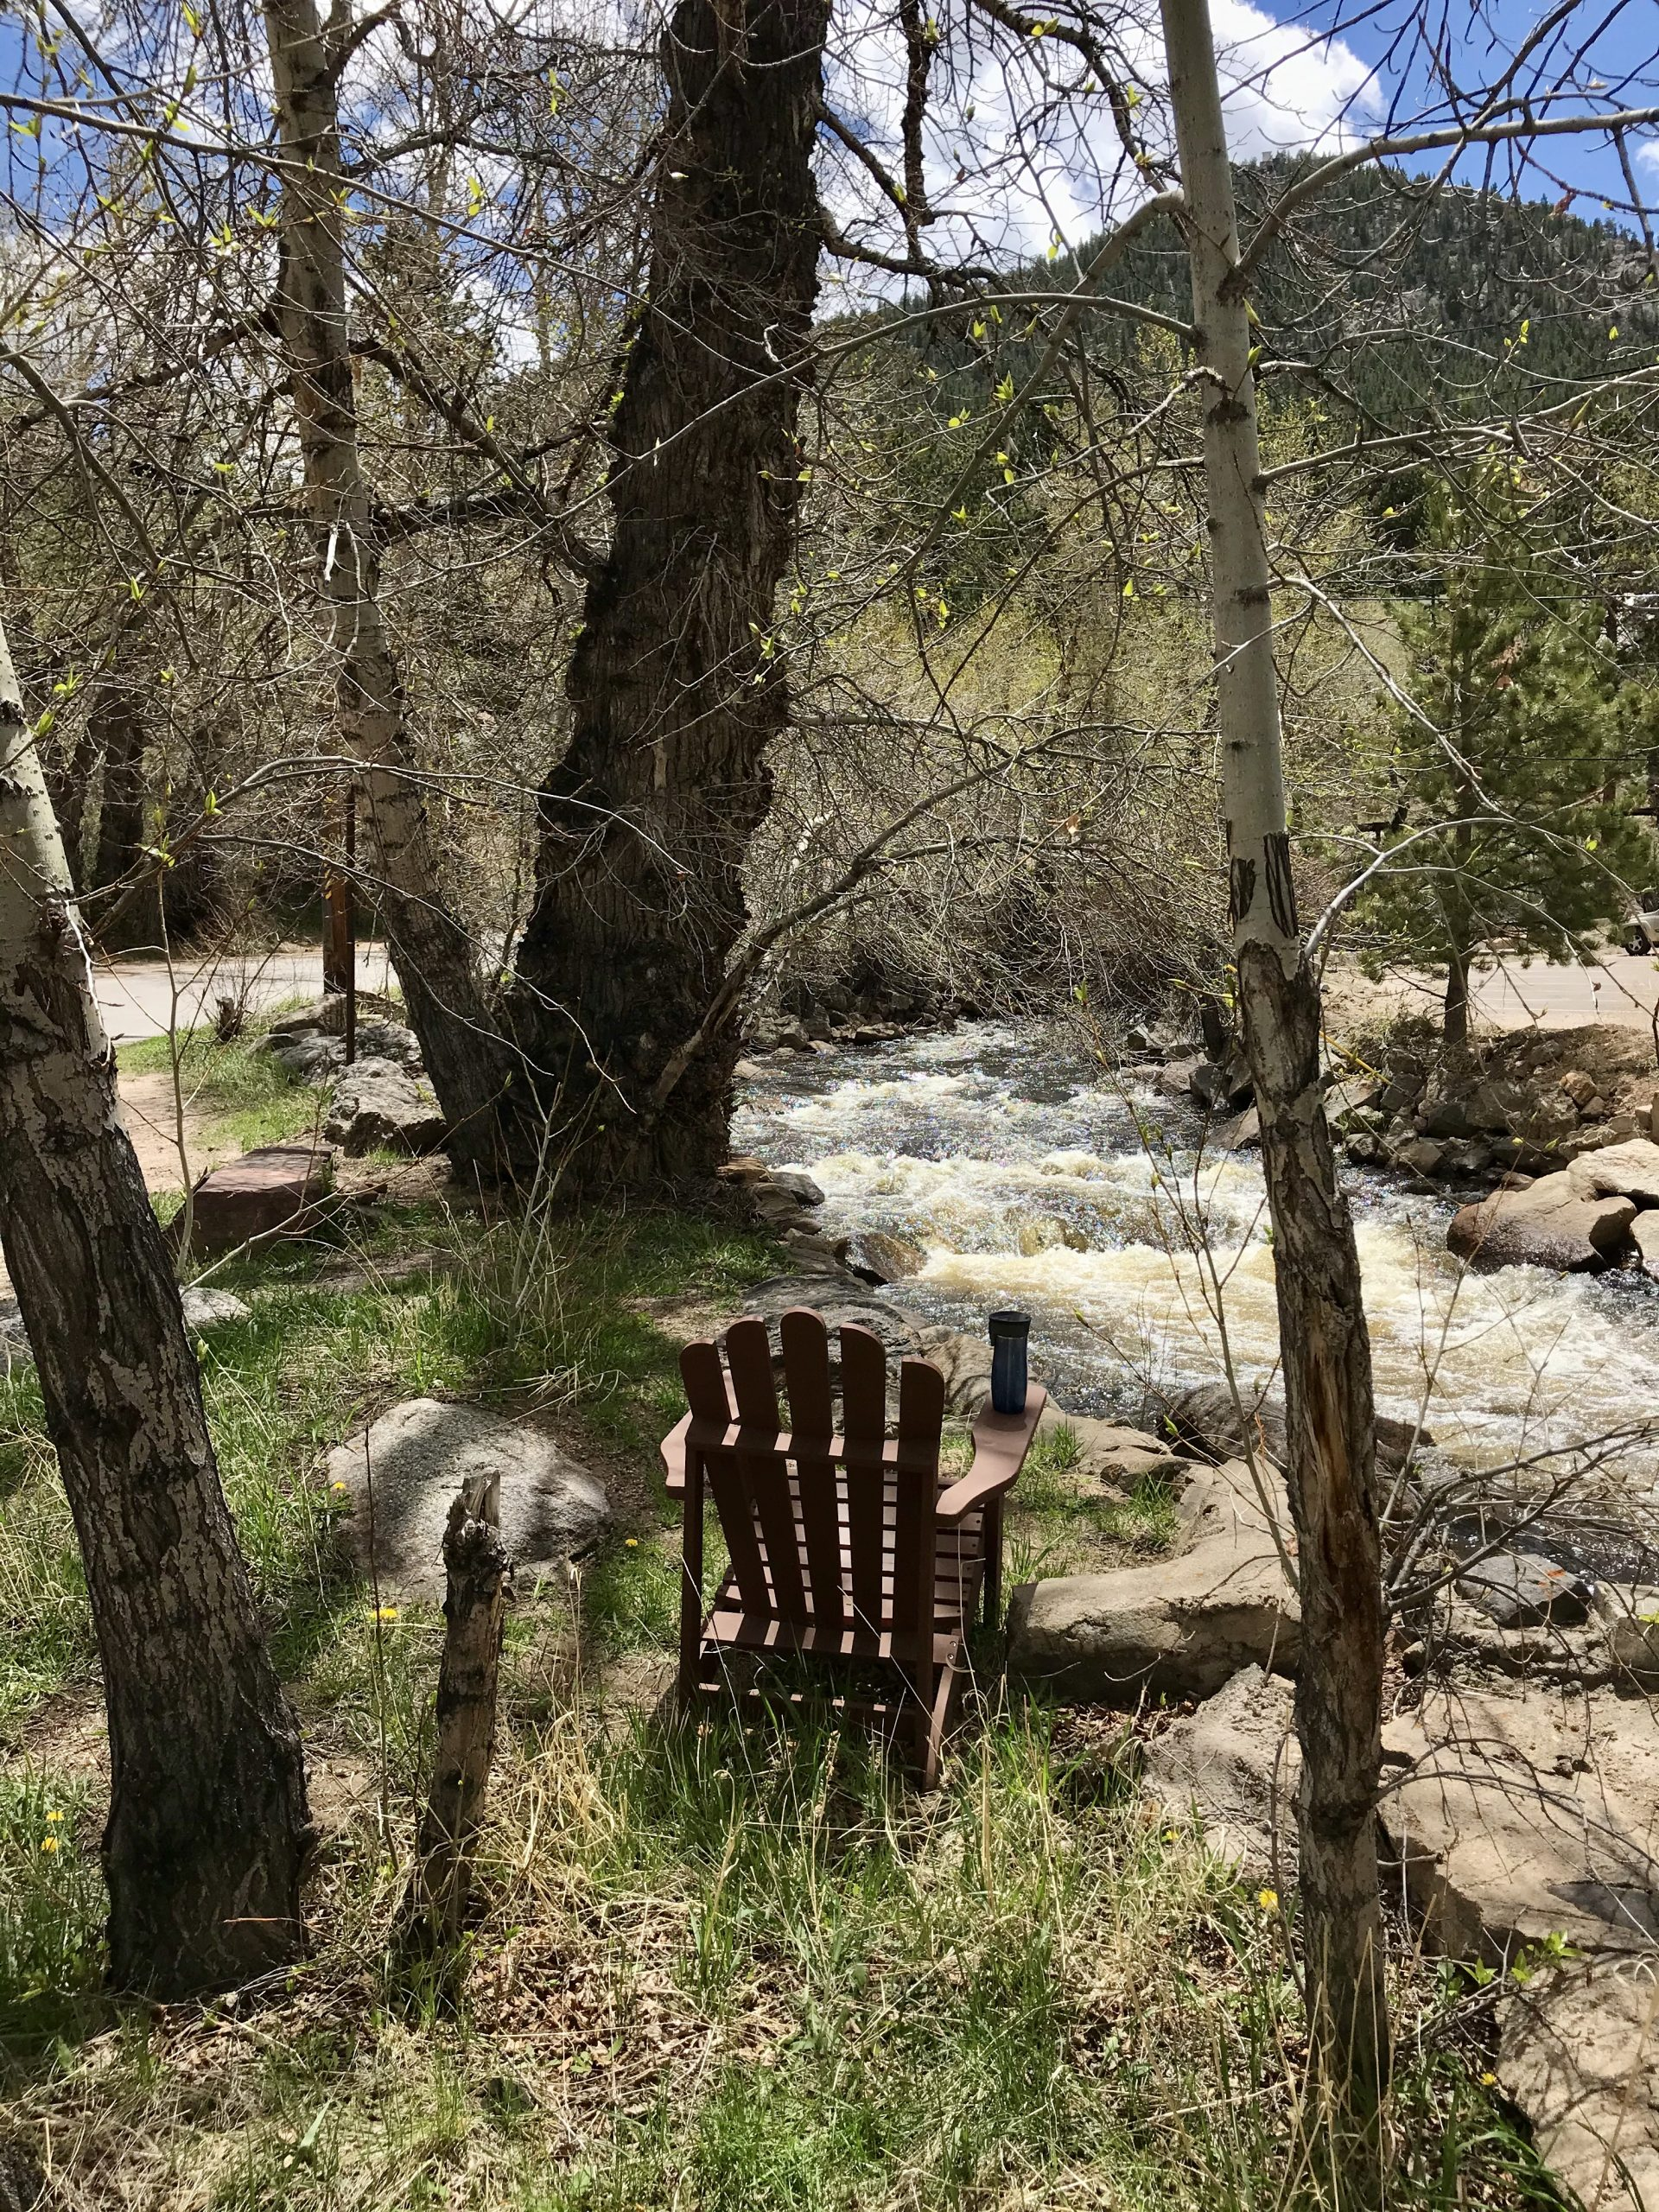 This is an image of This Mountain Life's quiet spot by the rushing Big Thompson River that flows out of Rocky Mountain National Park